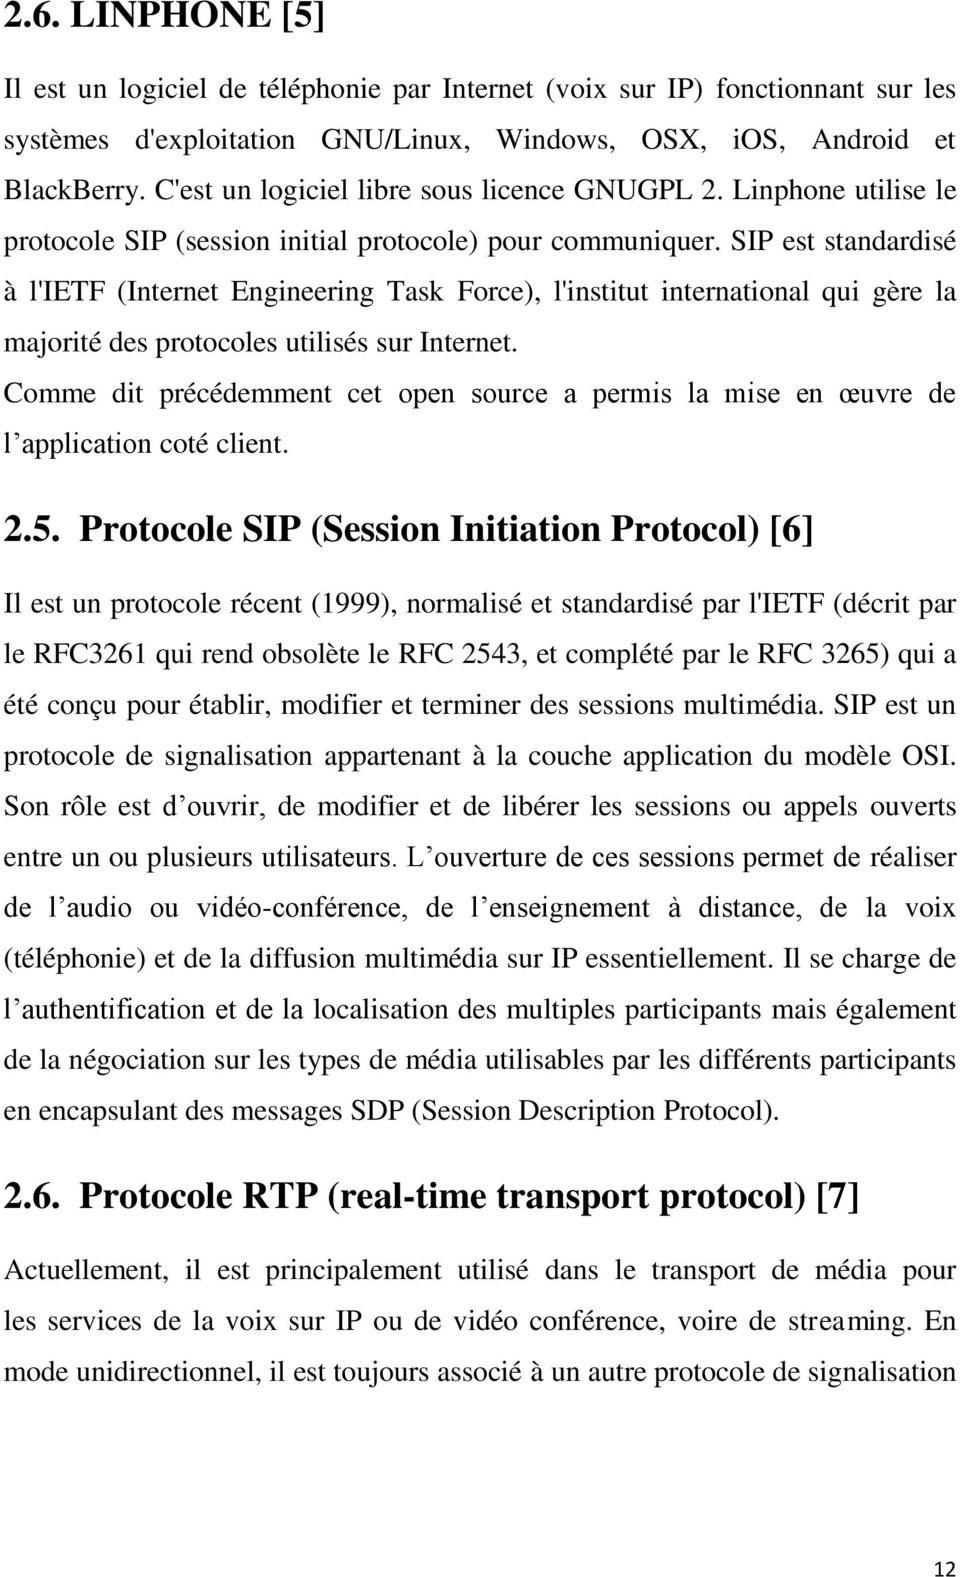 SIP est standardisé à l'ietf (Internet Engineering Task Force), l'institut international qui gère la majorité des protocoles utilisés sur Internet.